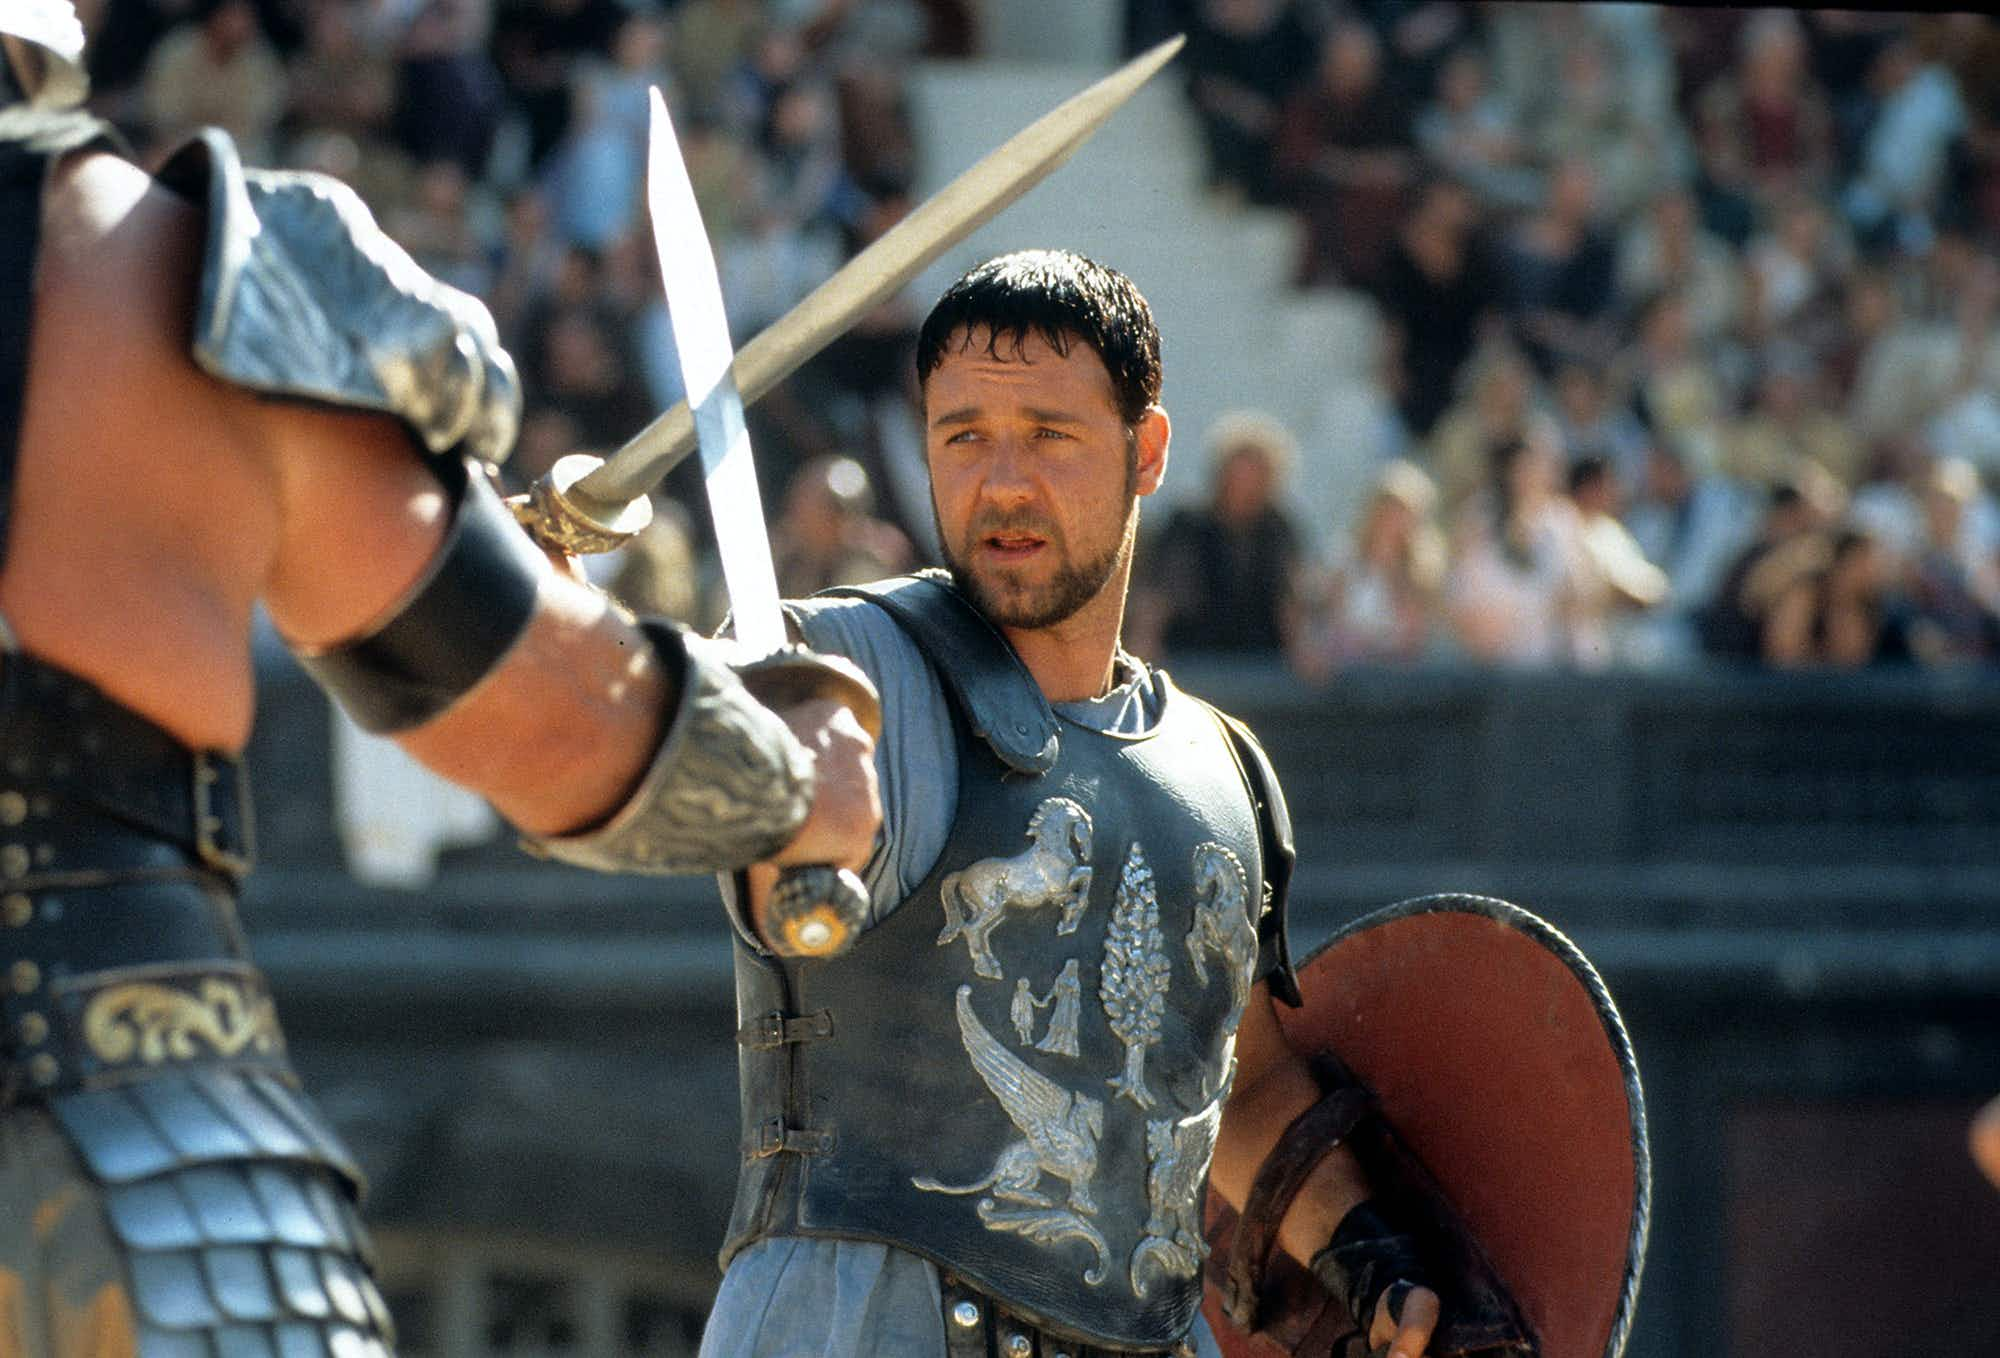 Live orchestra screening of Gladiator to take place at Rome's Circo Massimo